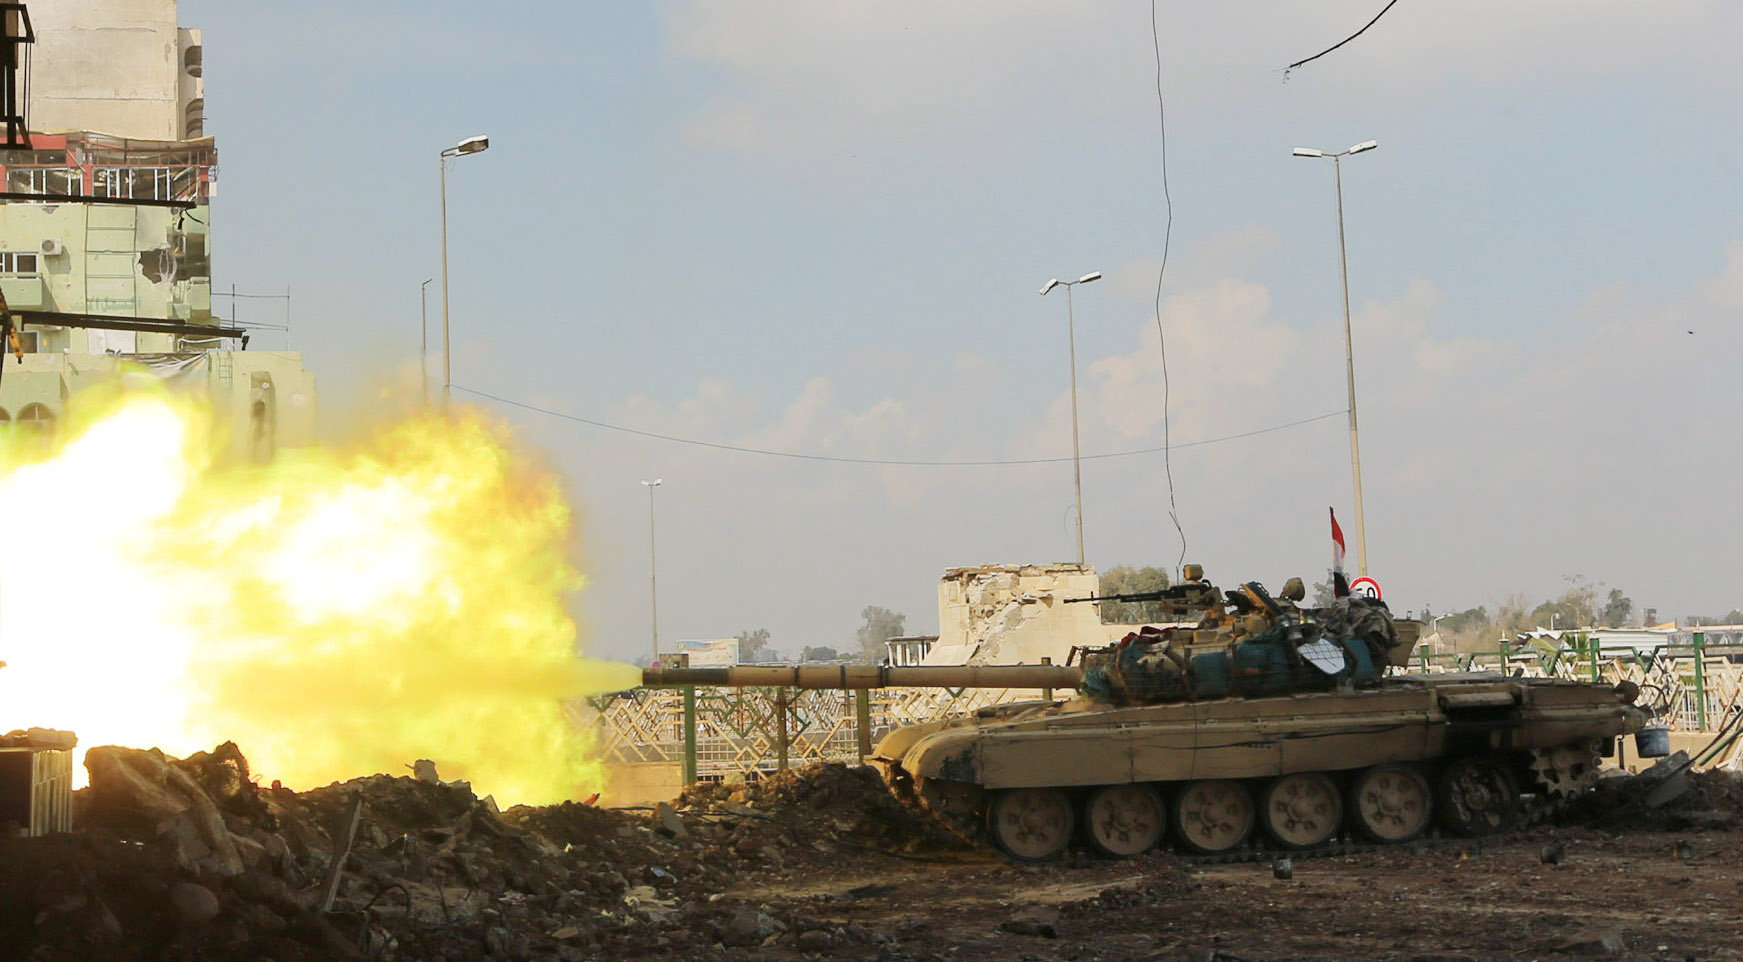 A tank of Iraqi rapid response forces fire against Islamic State militants at the Bab al-Tob area in Mosul, Iraq, March 14, 2017. REUTERS/Ari Jalal